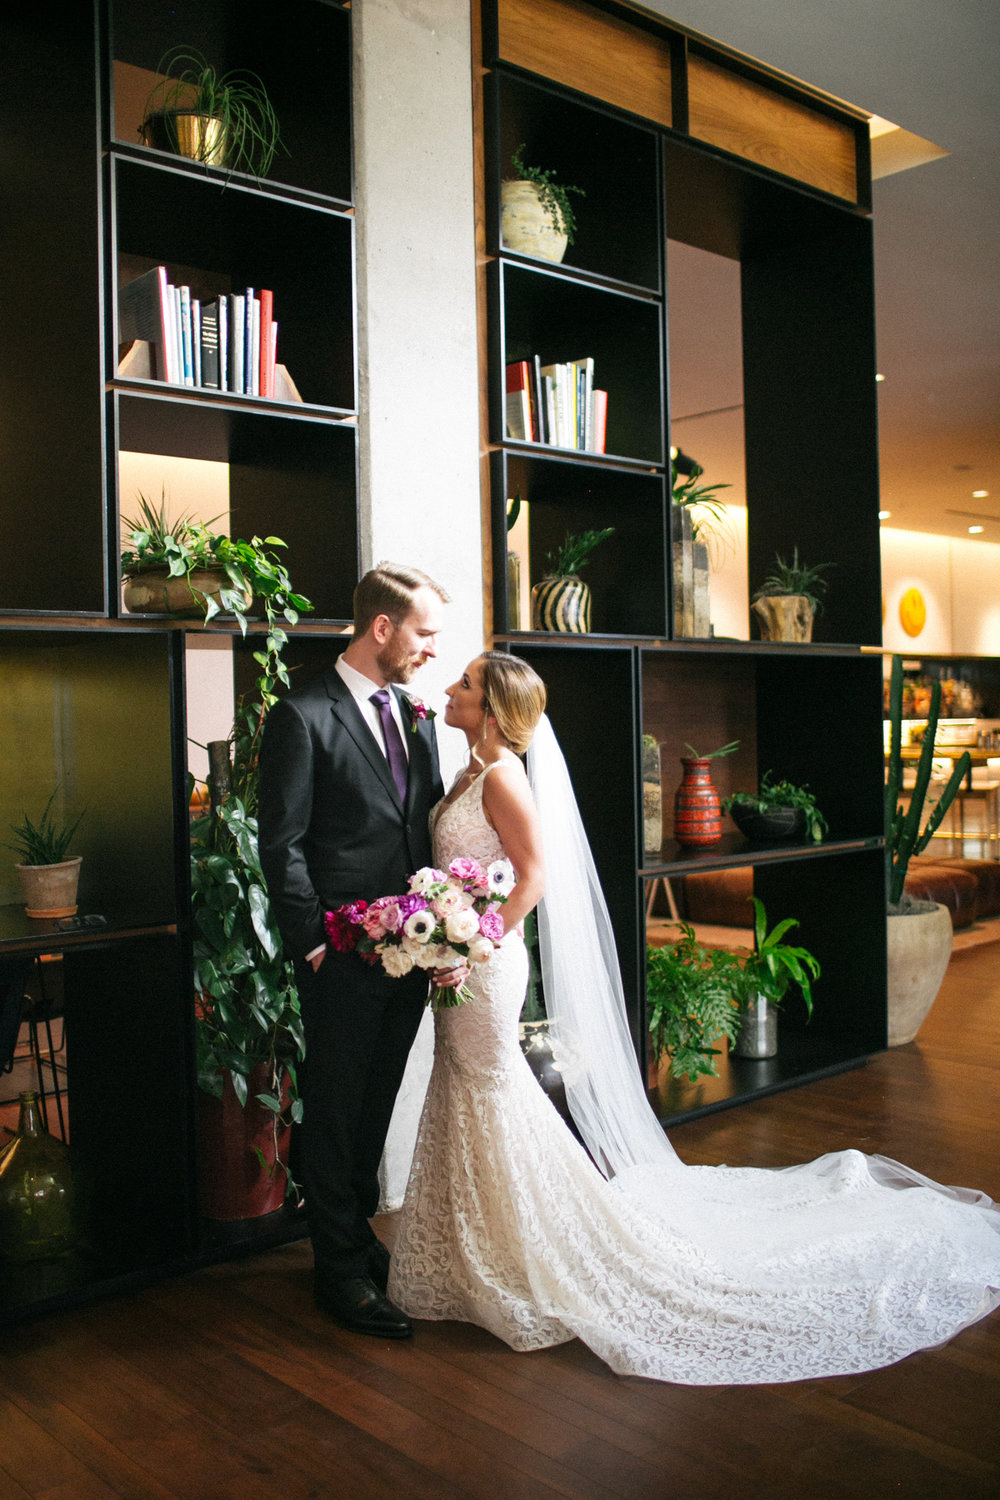 South Congress Hotel Wedding by Highland Avenue Events